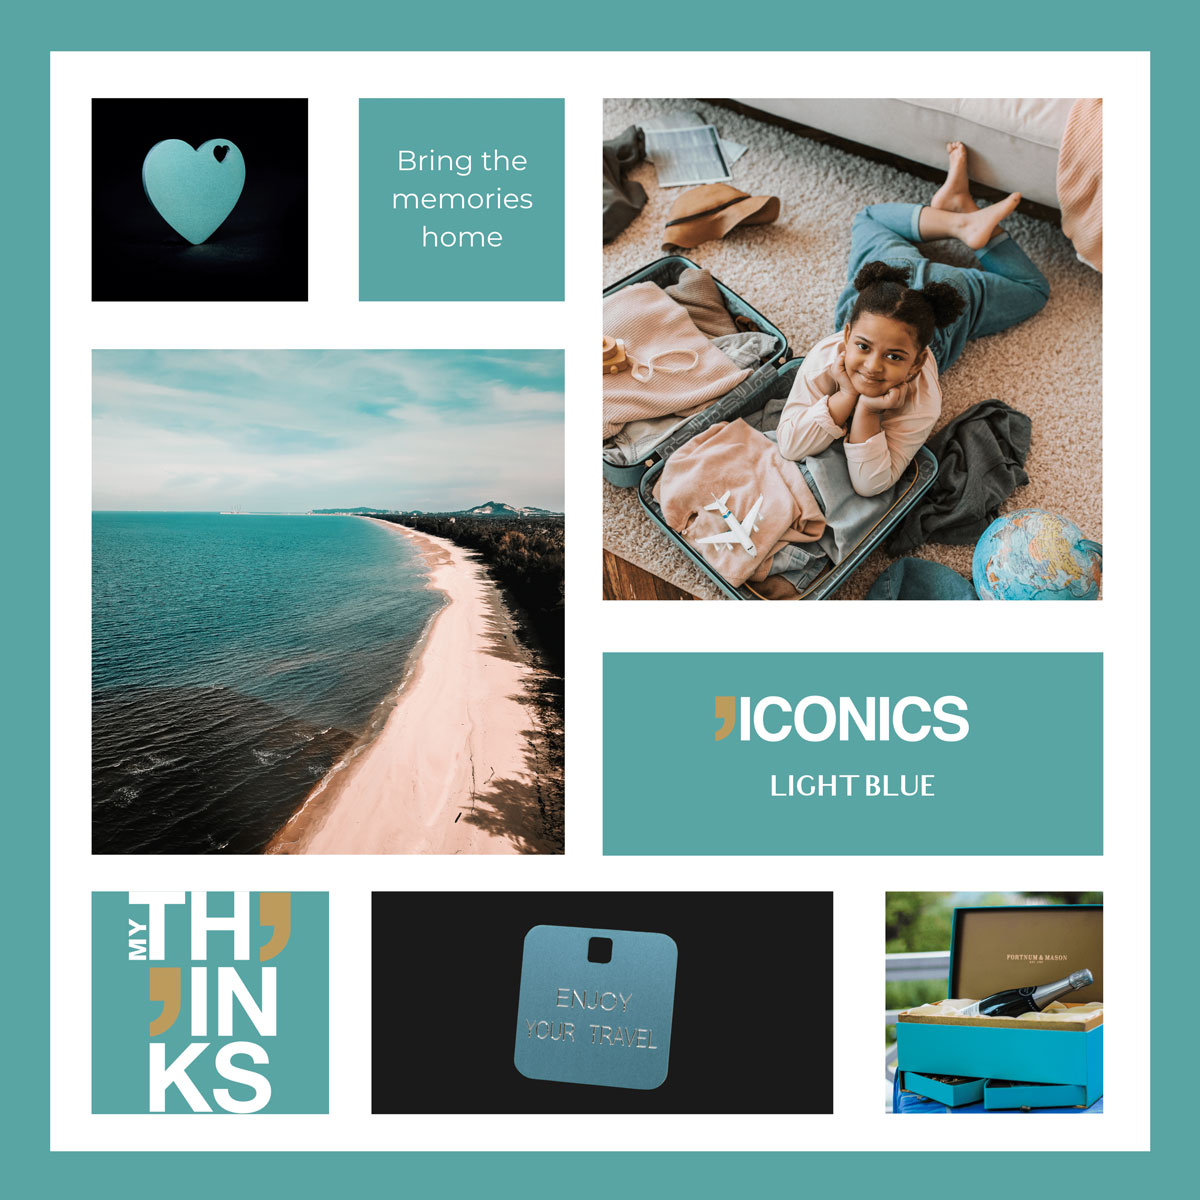 Mood board Iconics collection gifts in light blue color tags personalized for the travel and gift market